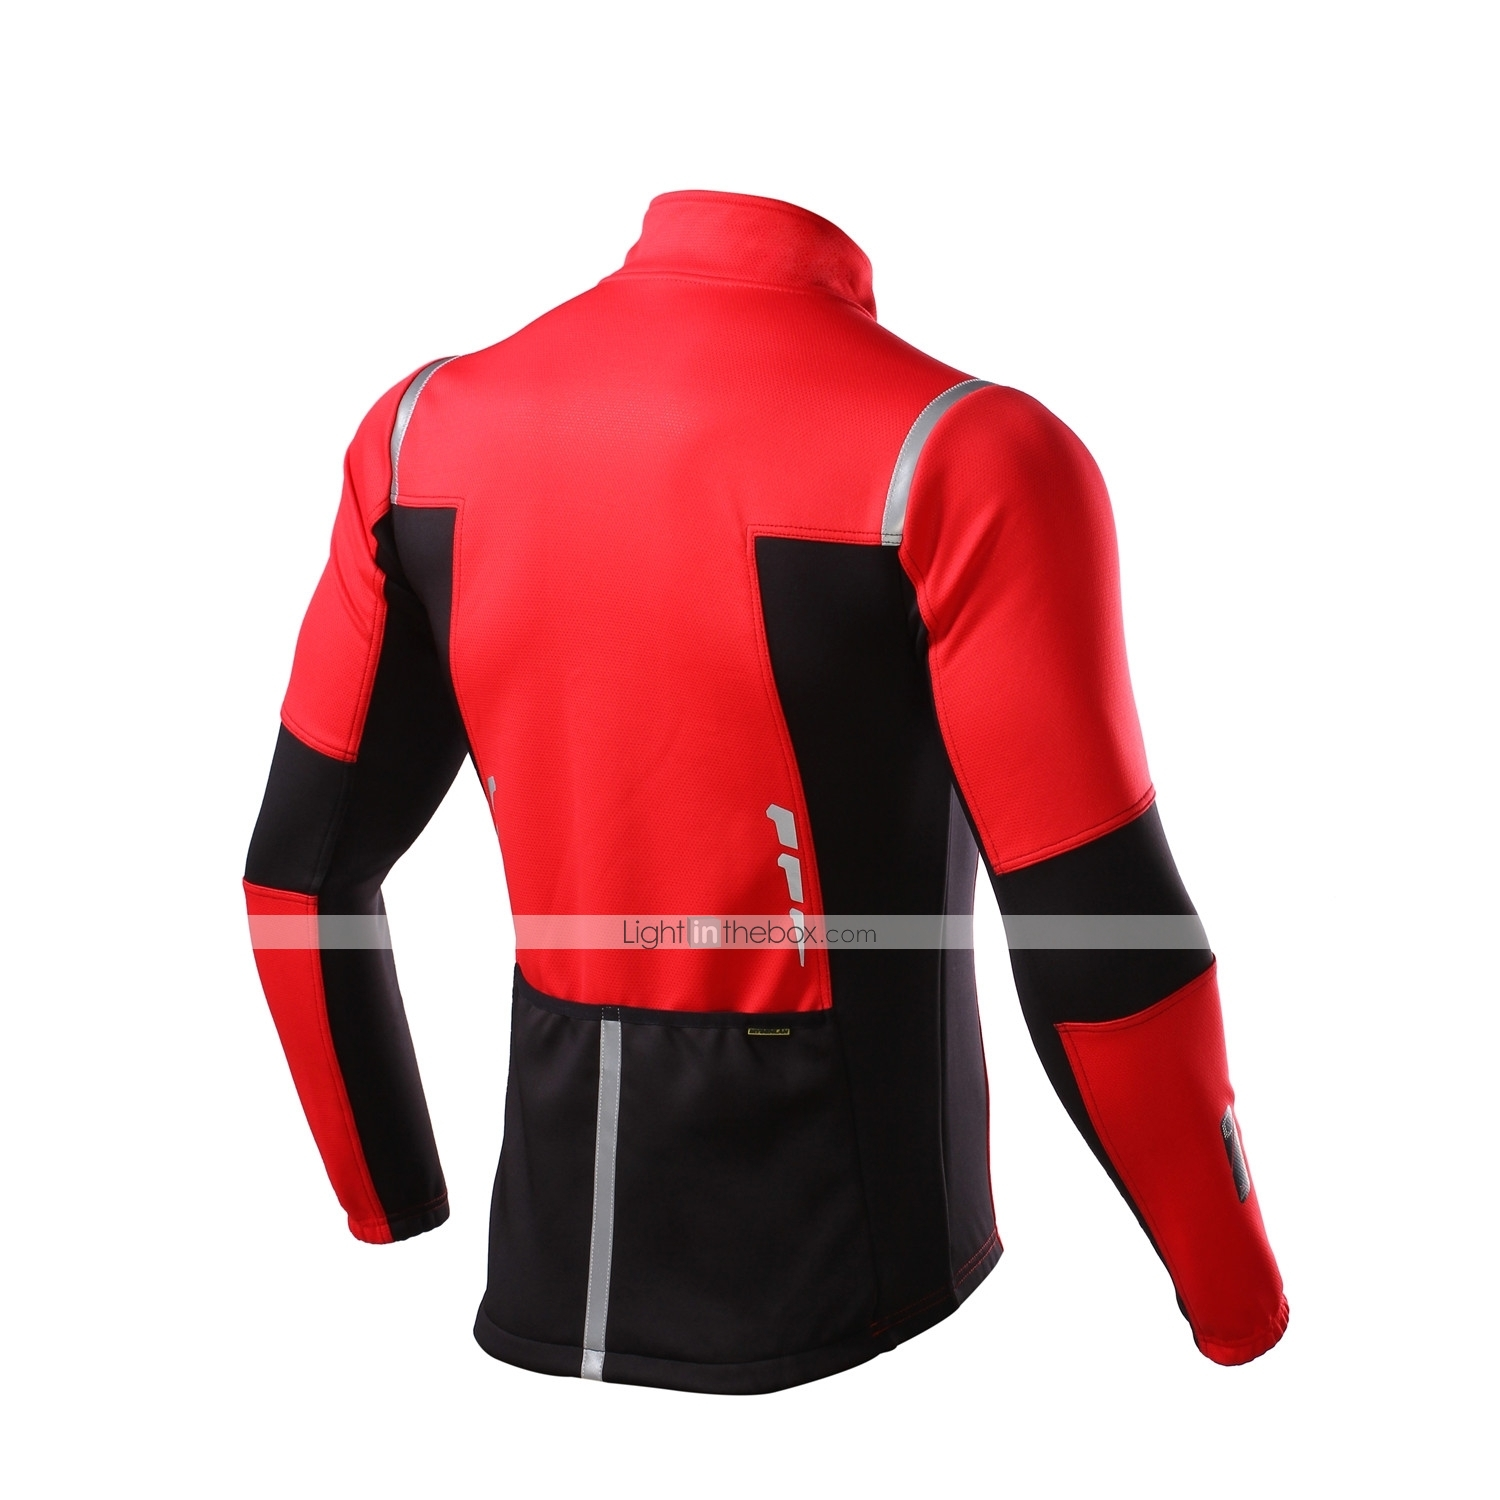 Running Reflective Details for Cycling Mysenlan Men/'s Cycling Jacket Windproof Waterproof Breathable Jacket Travelling Warm Fleece Thermal